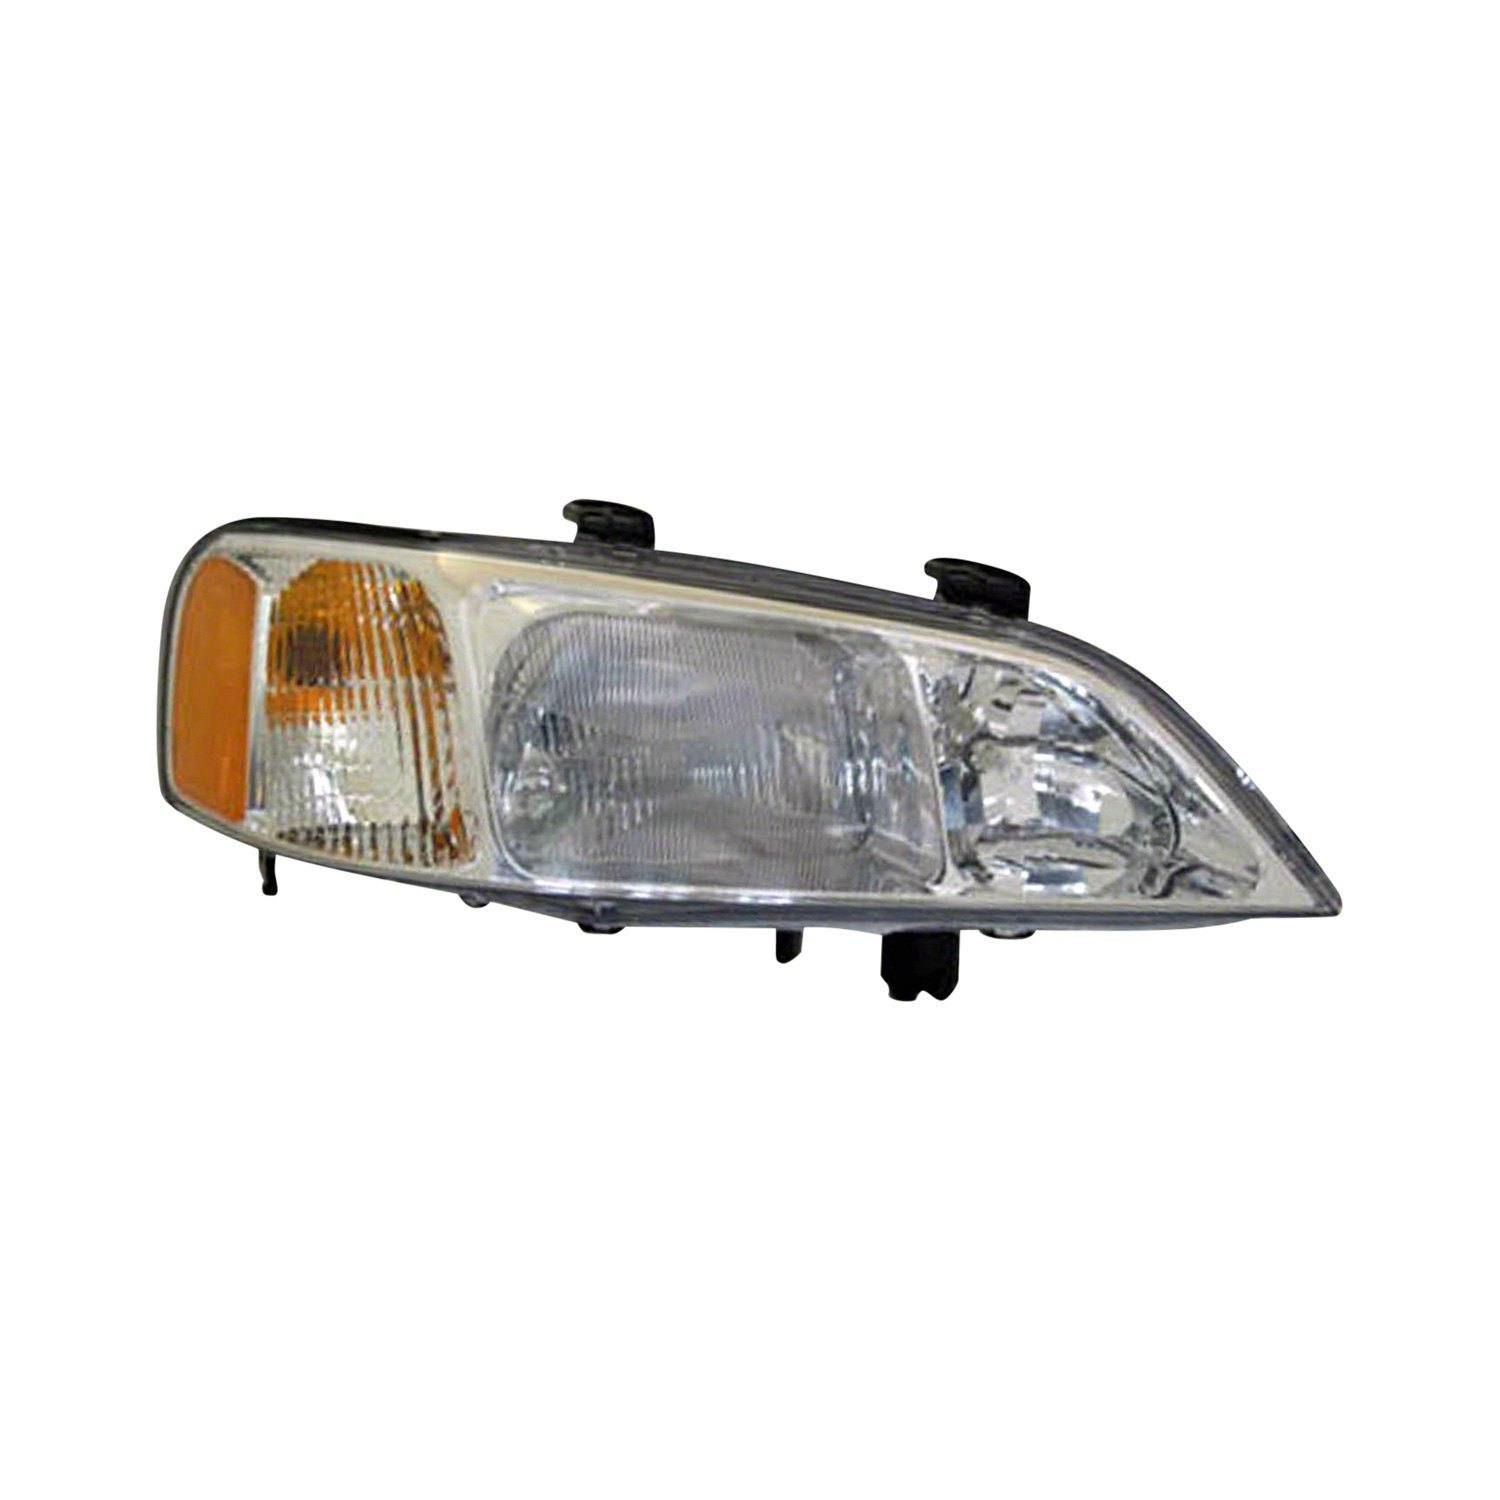 For Acura TL 1999-2001 Replace AC2519104 Passenger Side